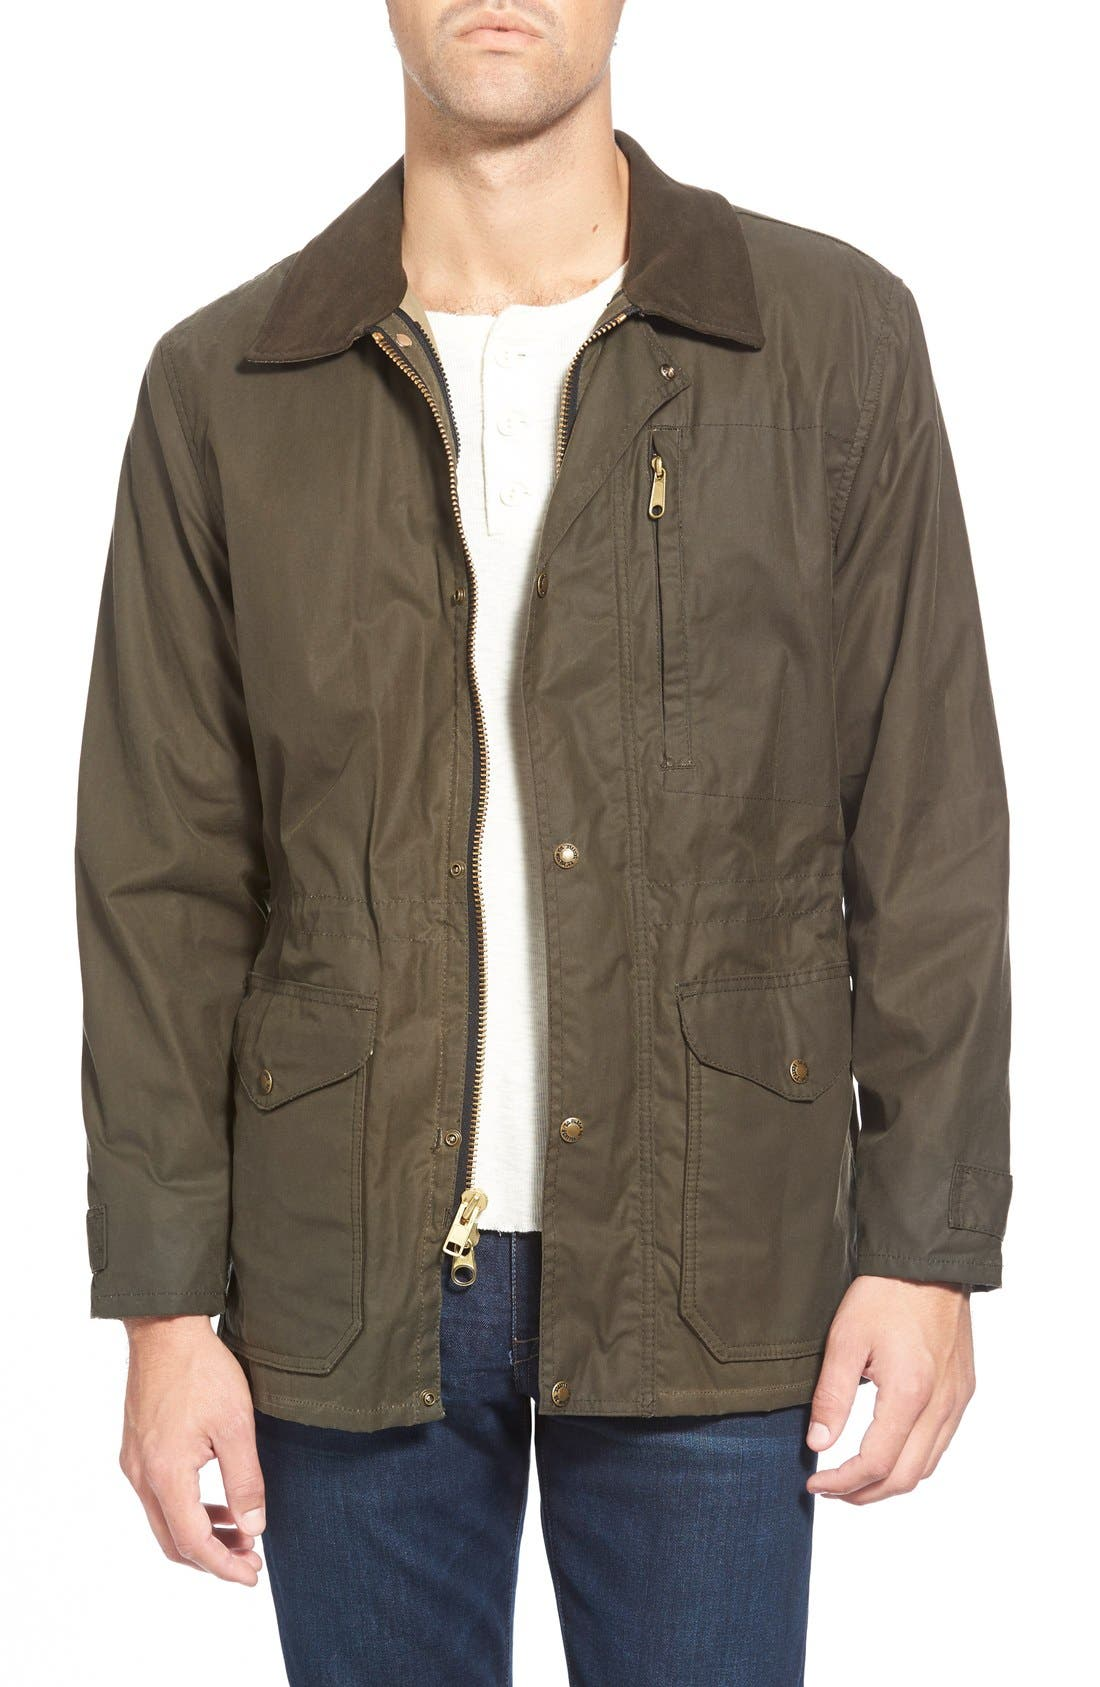 Main Image - Filson'Cover Cloth Mile Marker' Waxed Cotton Coat (Nordstrom Exclusive)